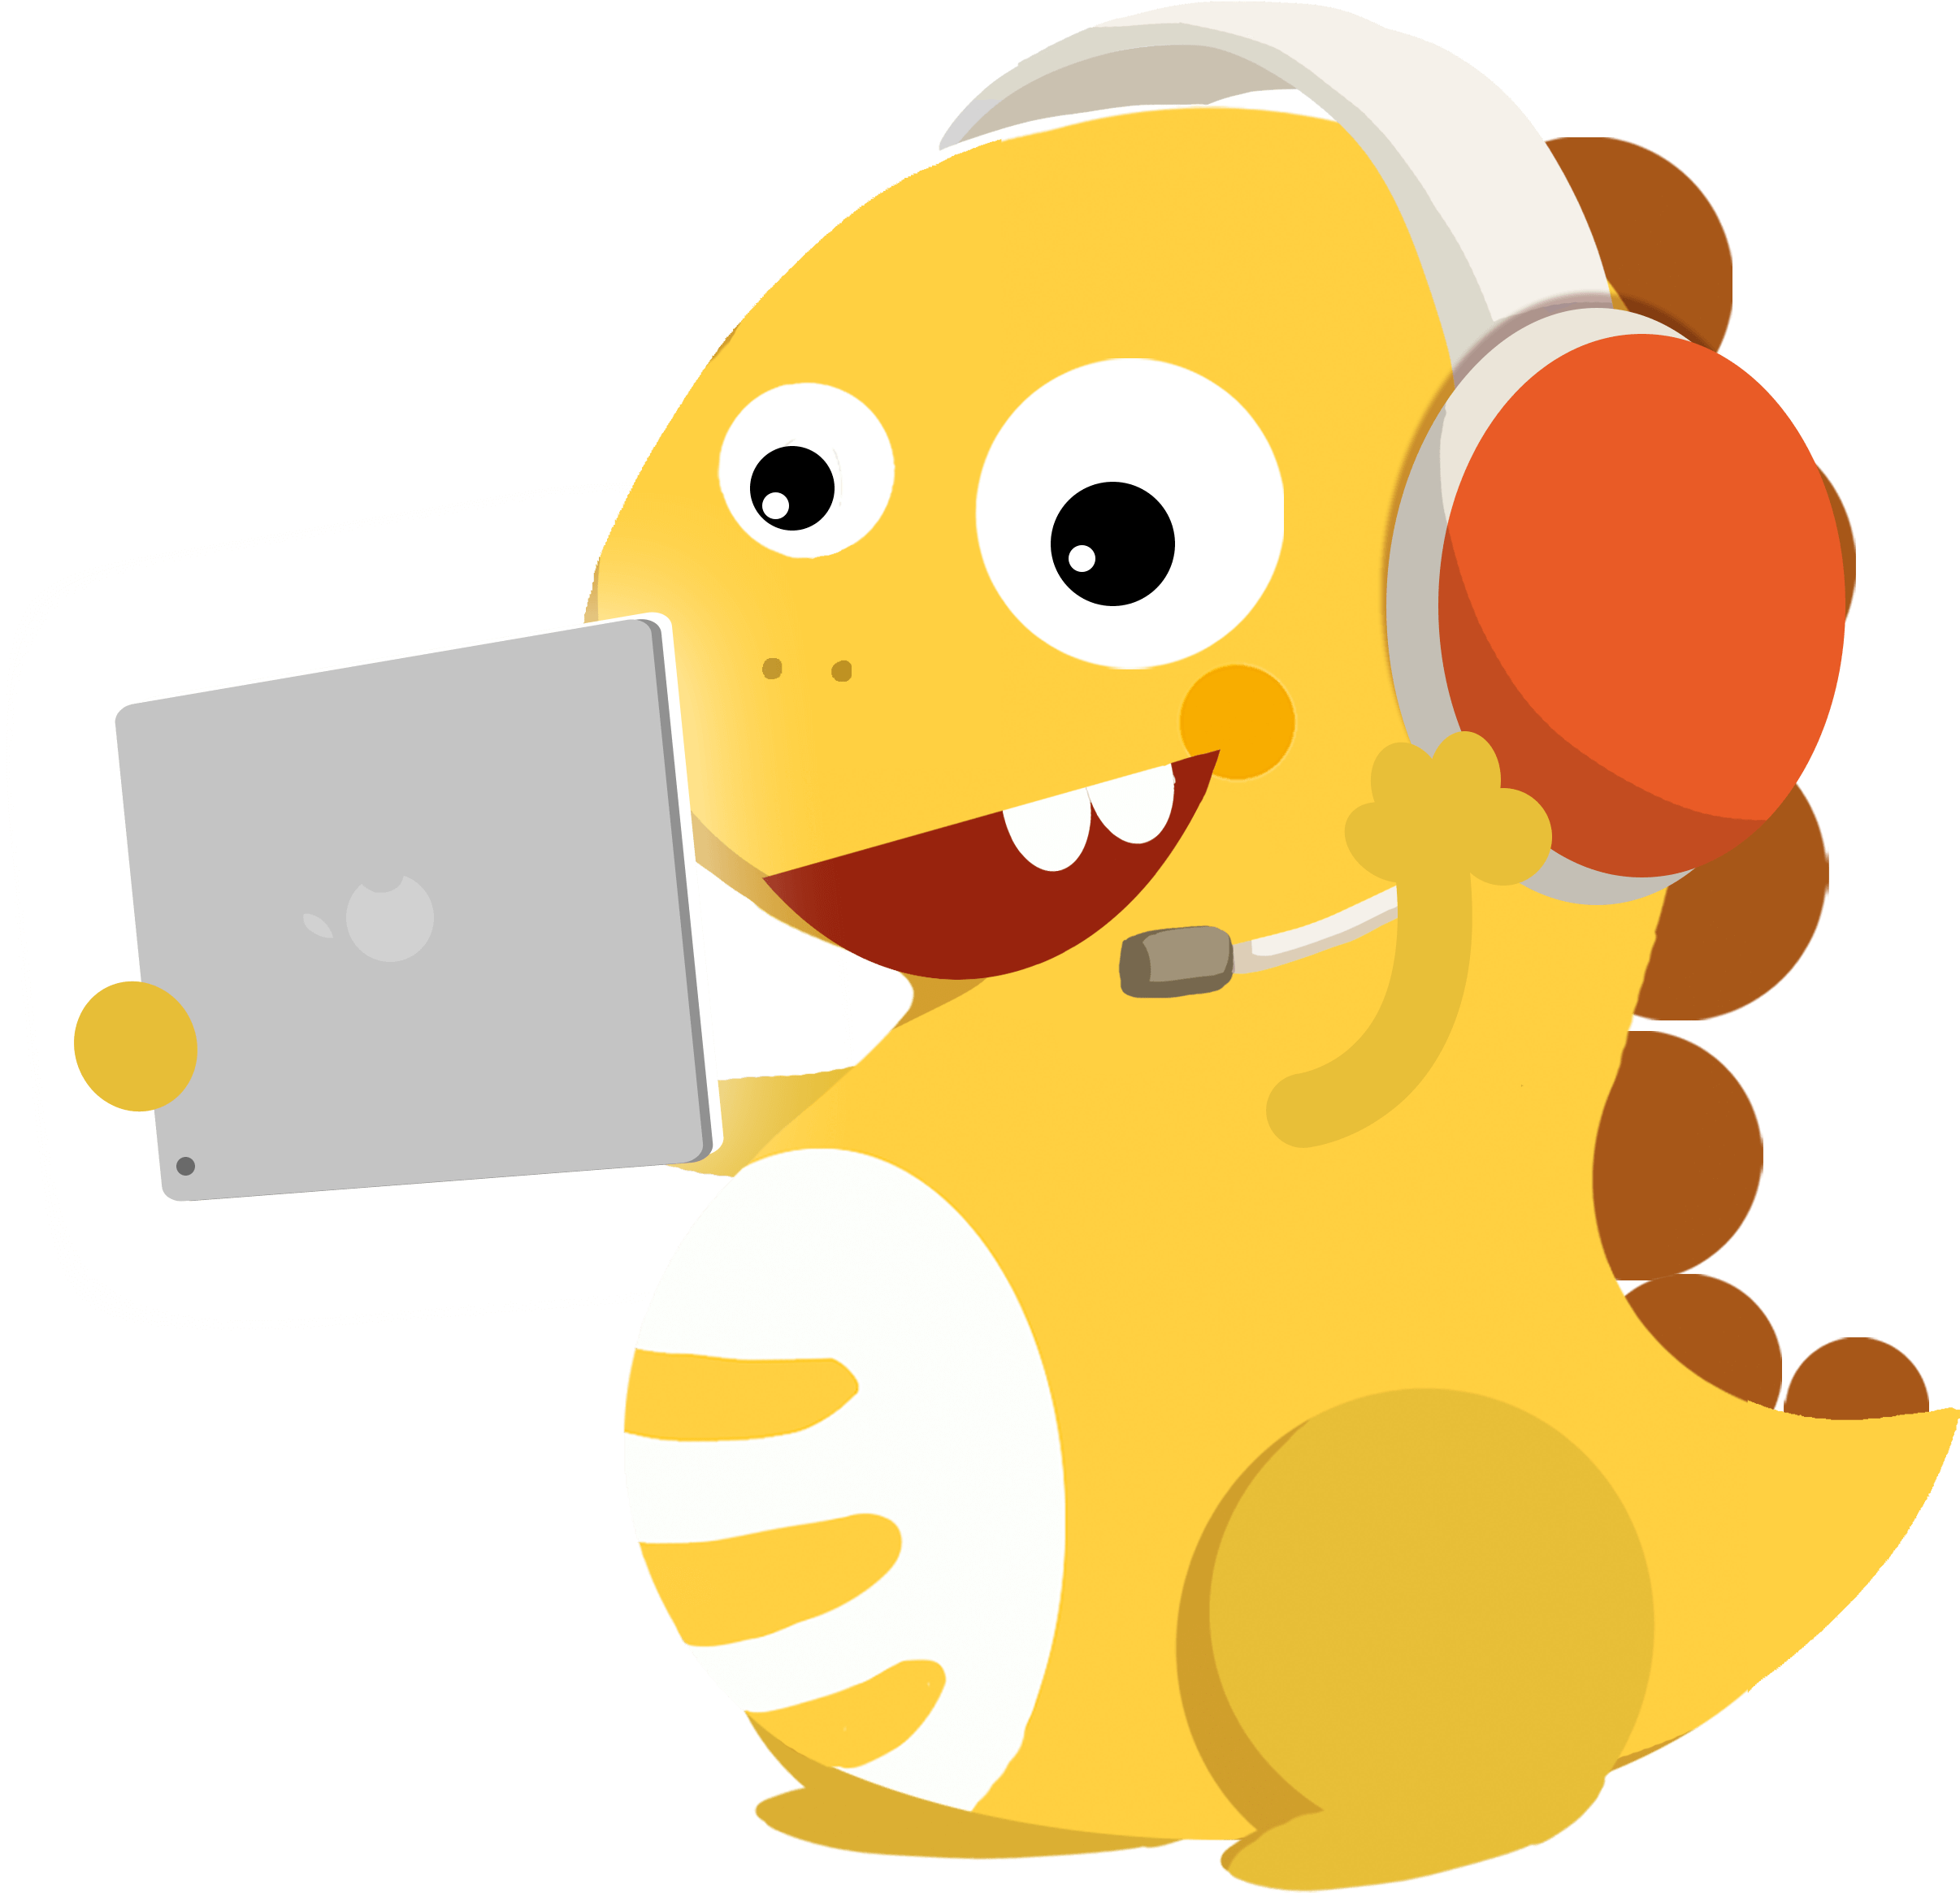 Good morning sun clipart vipkid svg library download Dino is ready to teach! Part time teaching, Full time fun!! VIPKID ... svg library download